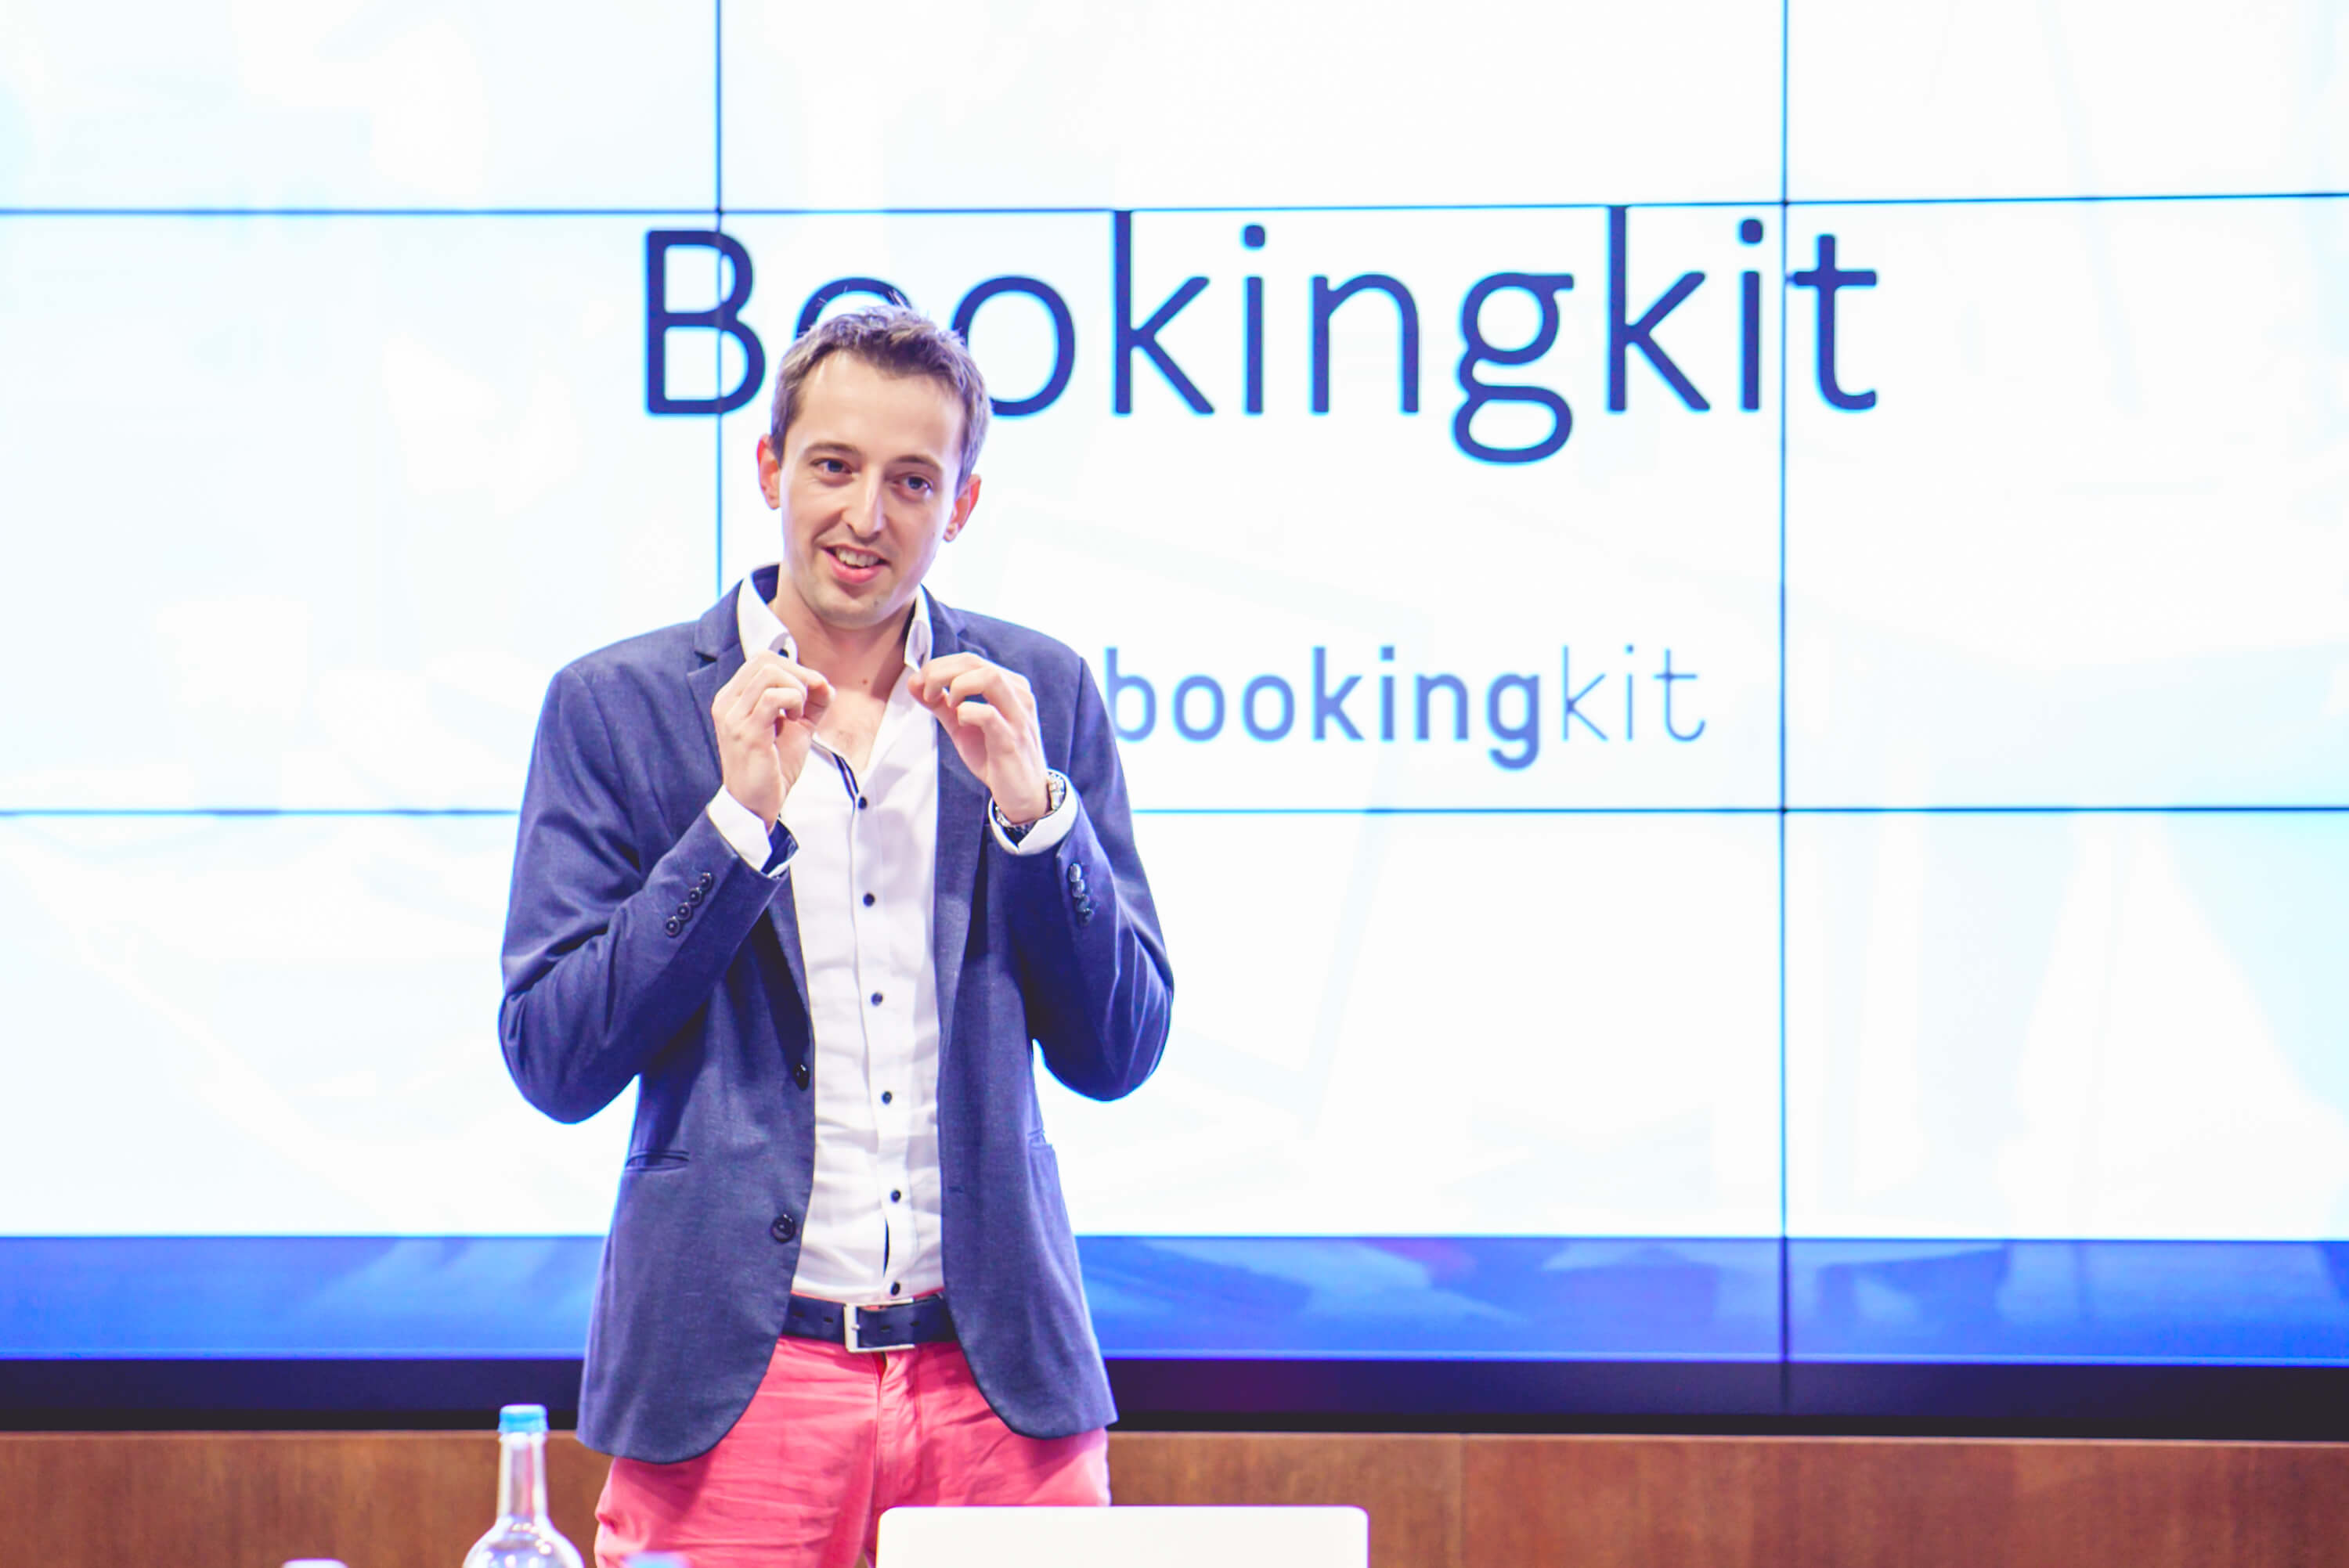 bookingkit-Award-Startup-of-the-Year-2017-VIR-TIC-Lukas-Hempel1